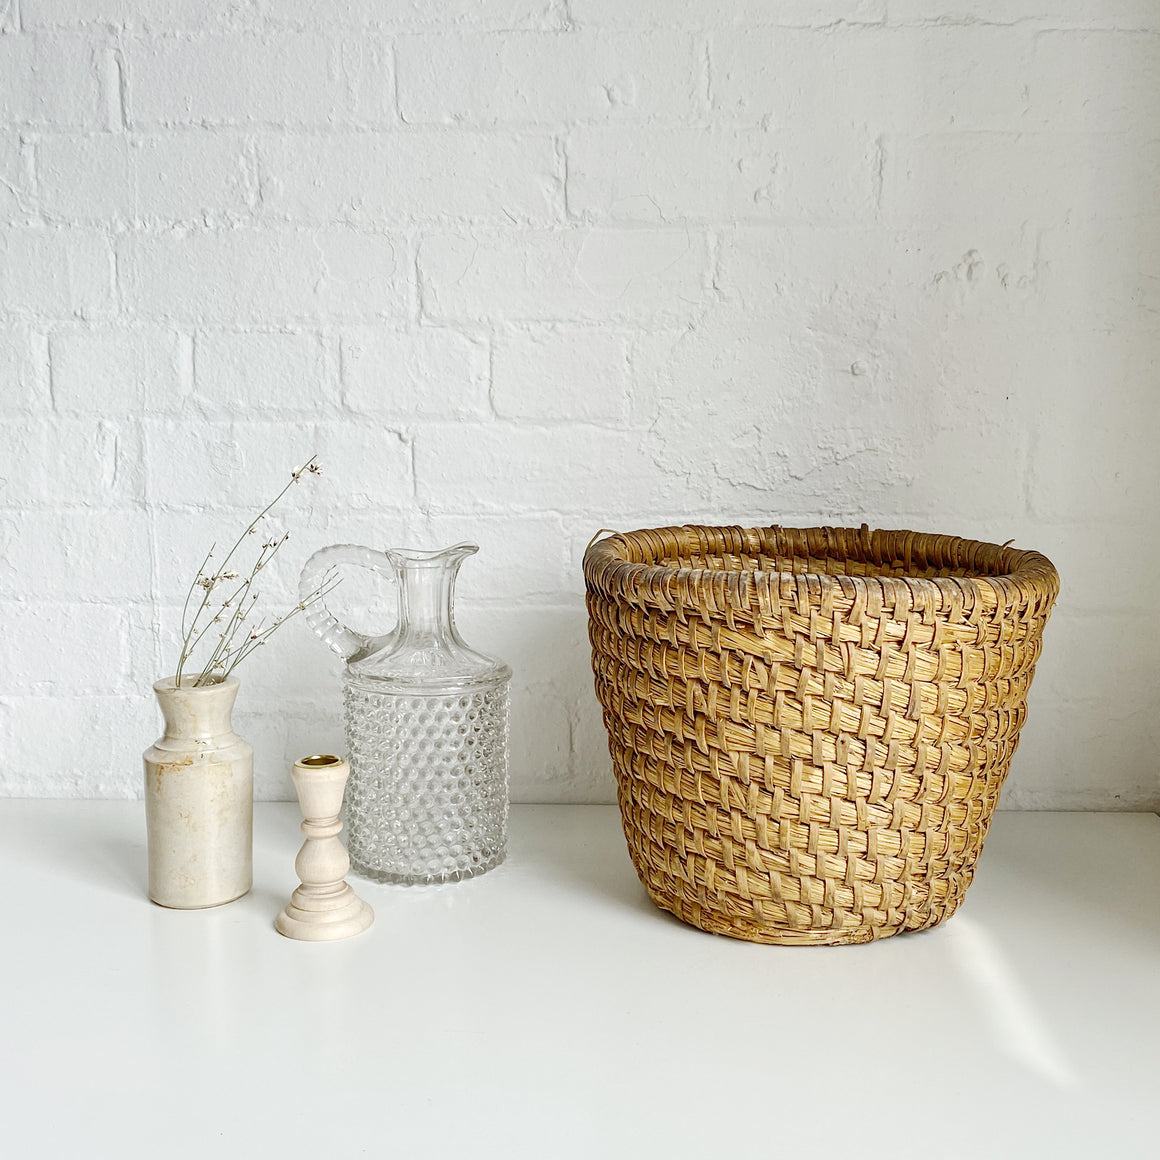 Woven Basket - Vintage - Medium